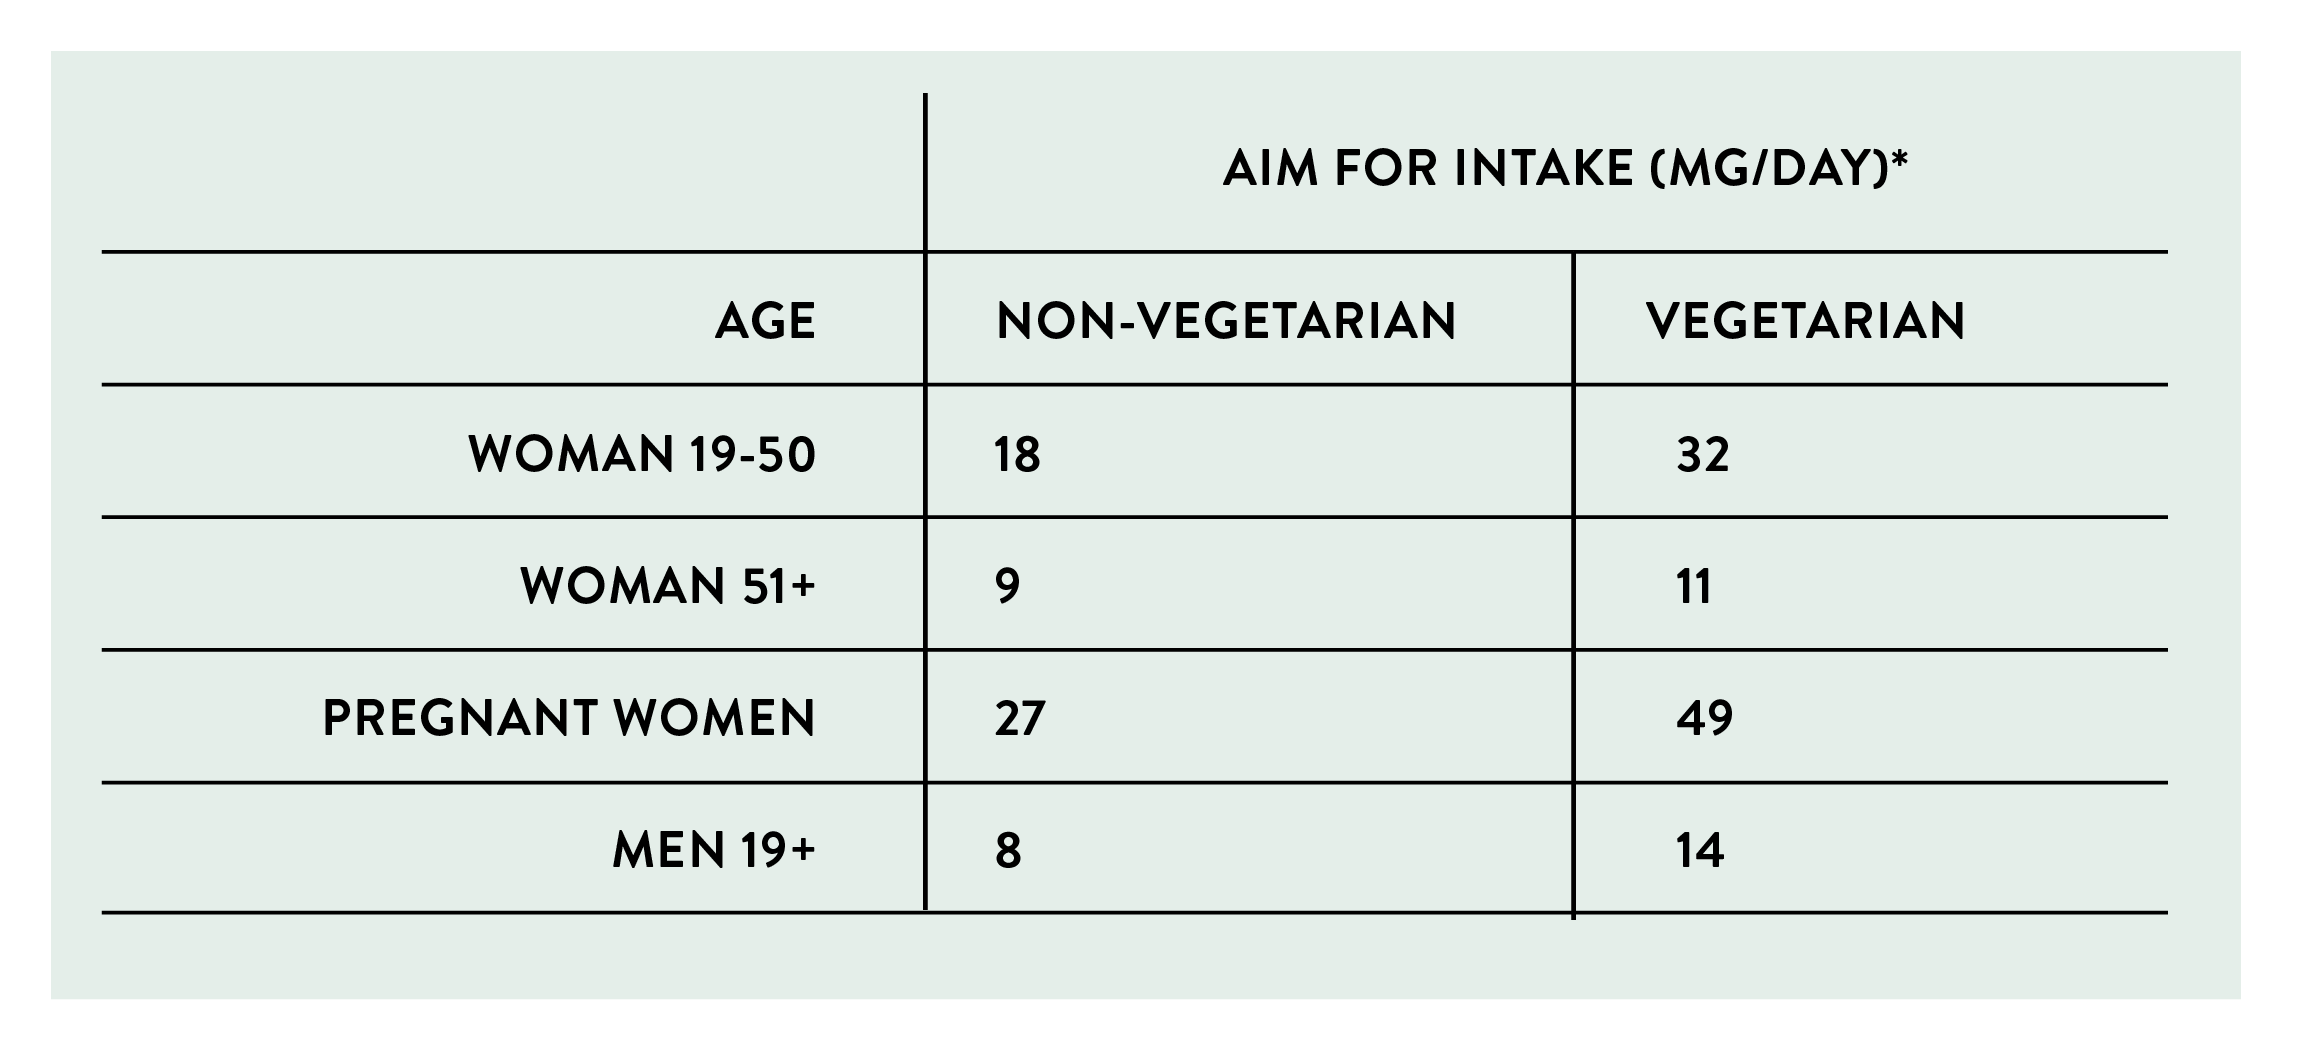 * Intake recommendations are from a combination of food and supplements    **Vegetarians need almost twice as much iron compared to non-vegetarians.